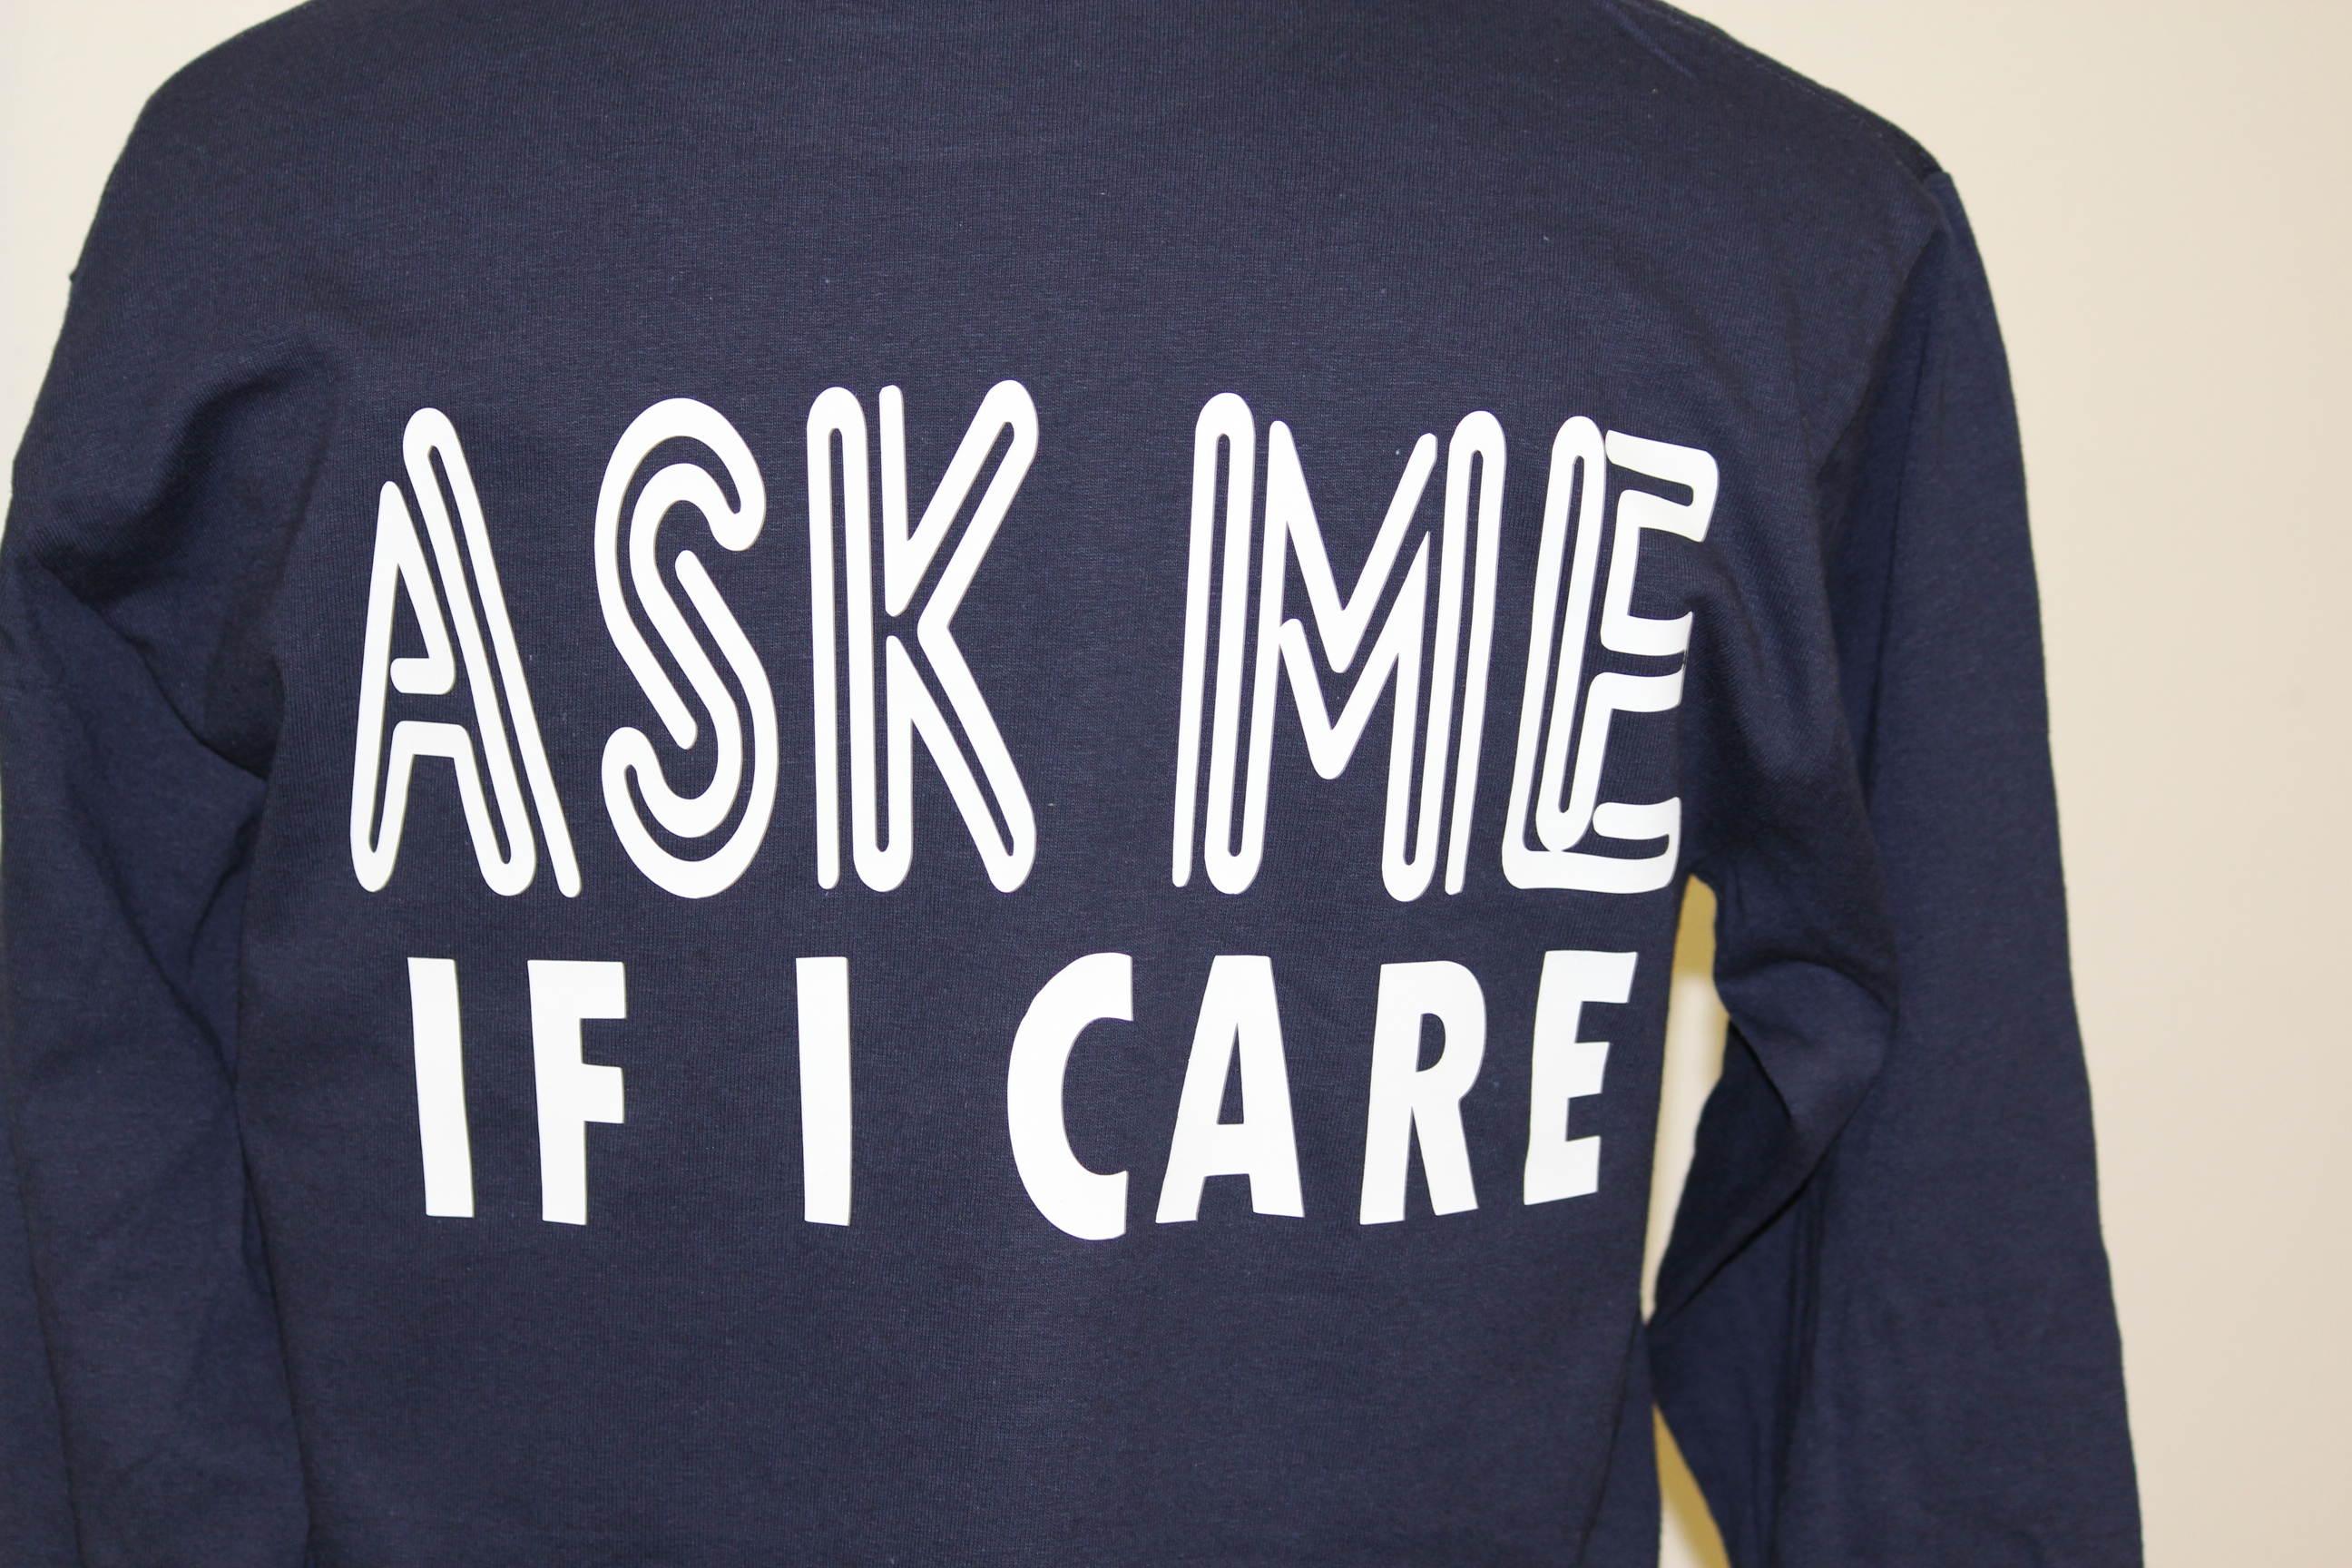 ask-me-if-i-care-shirt.jpg